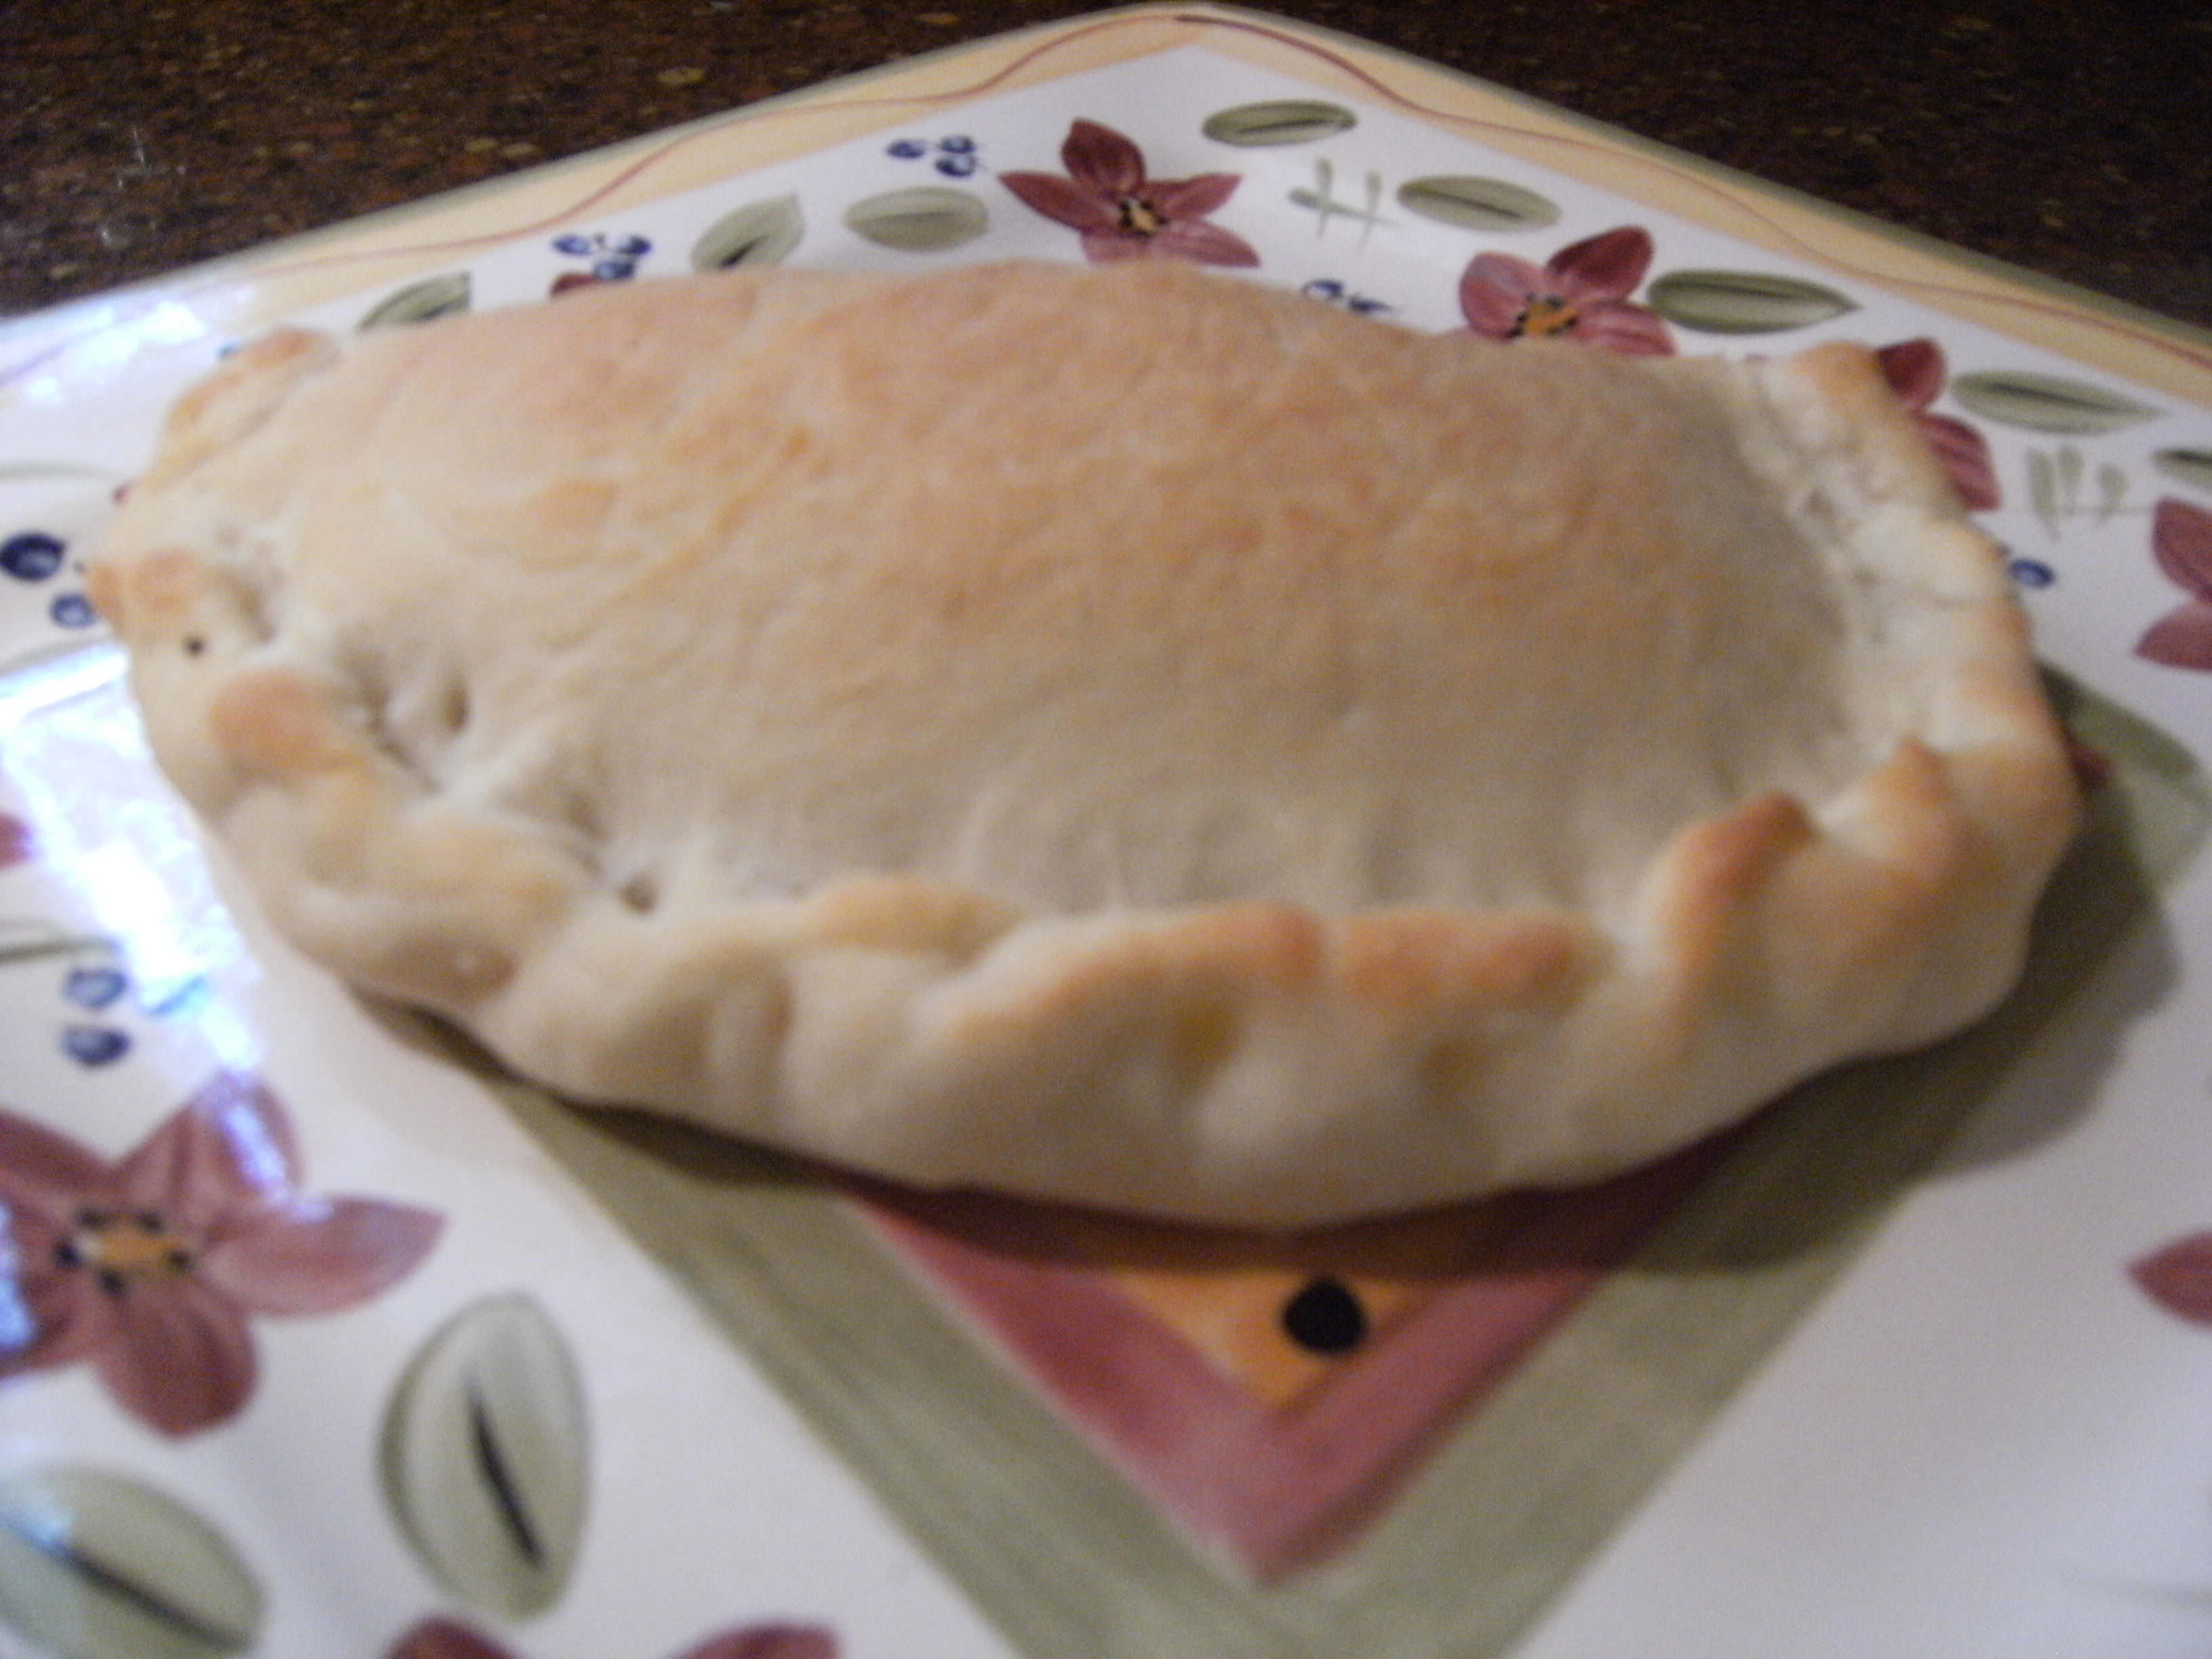 homemade calzone, made from homemade pizza dough